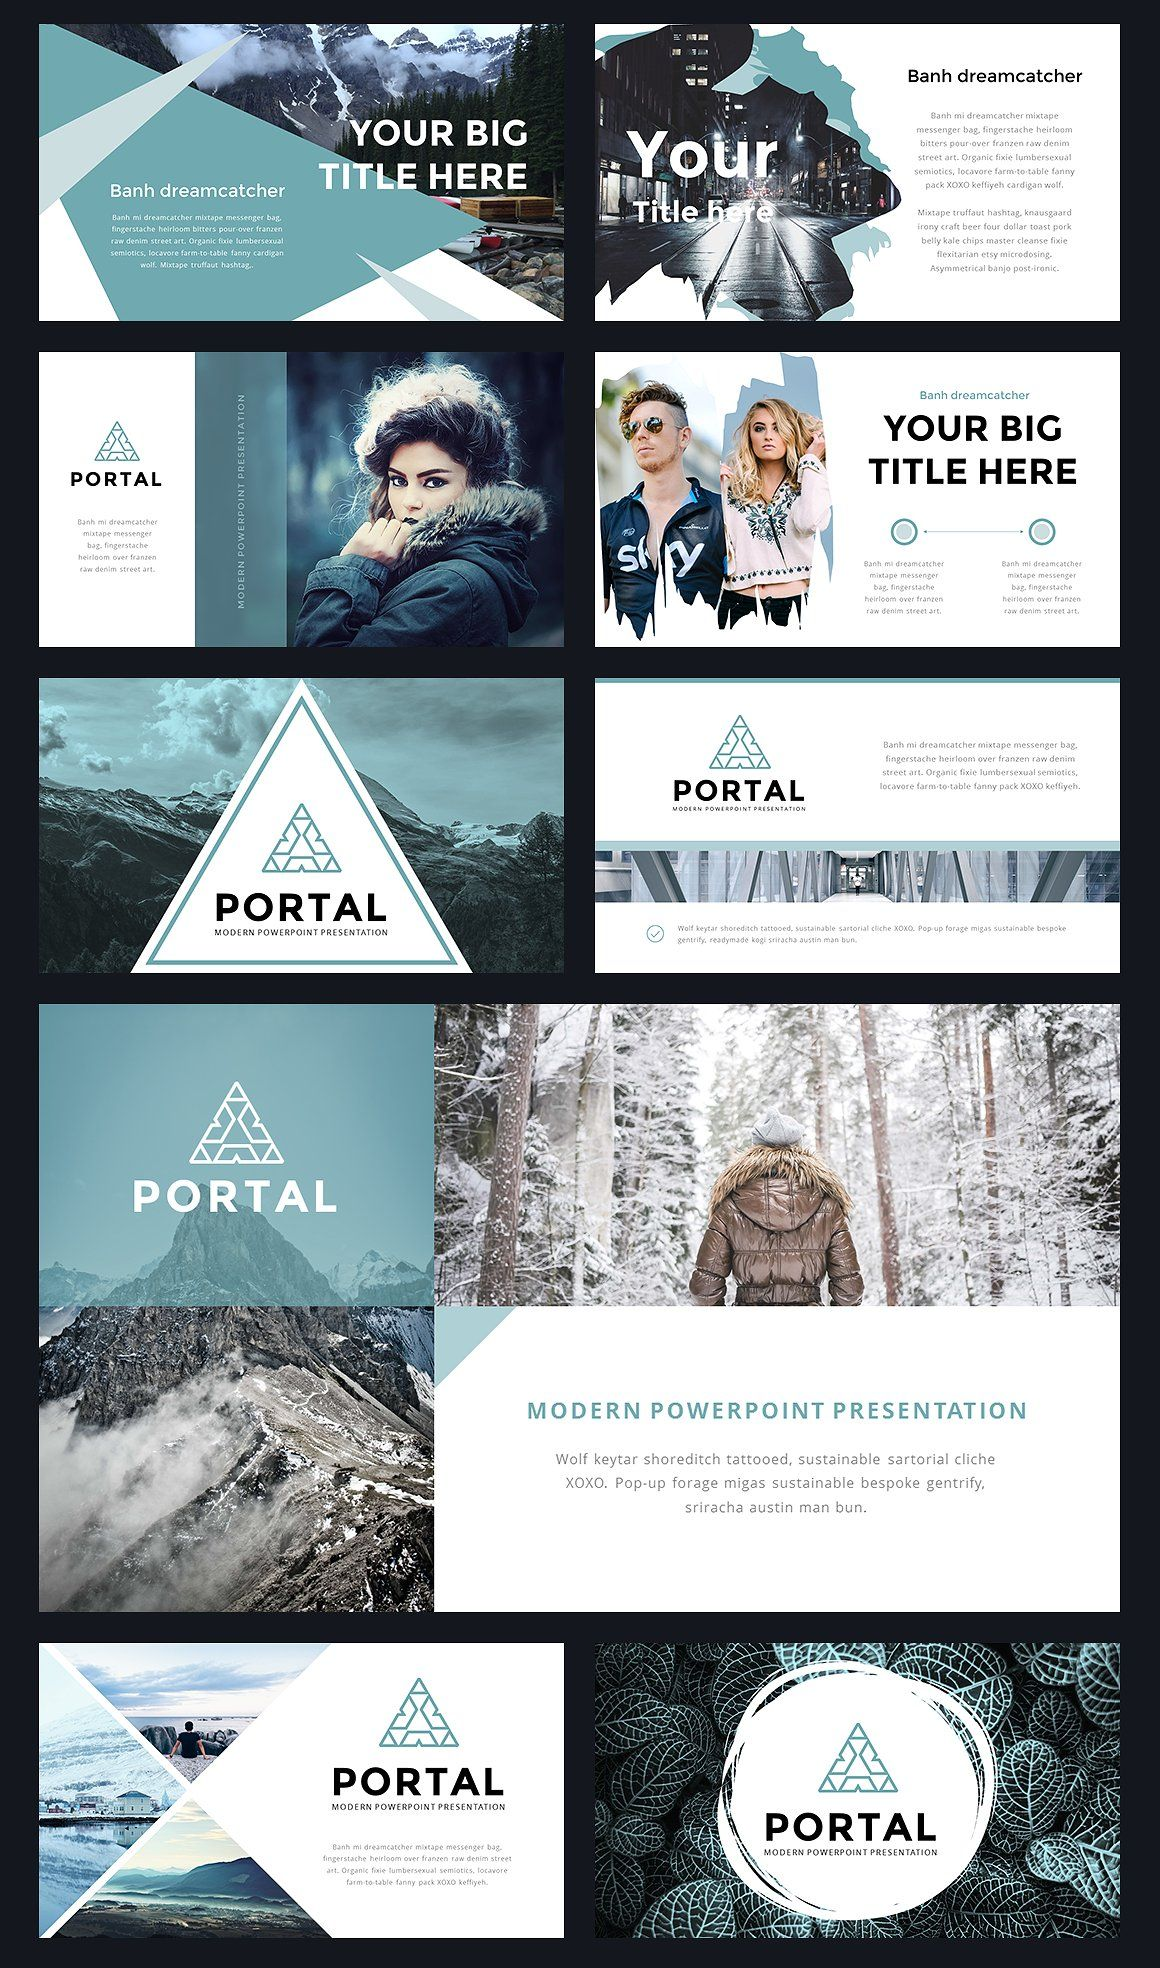 Portal modern powerpoint template portal template and modern portal modern powerpoint template by thrivisualy on creativemarket toneelgroepblik Image collections